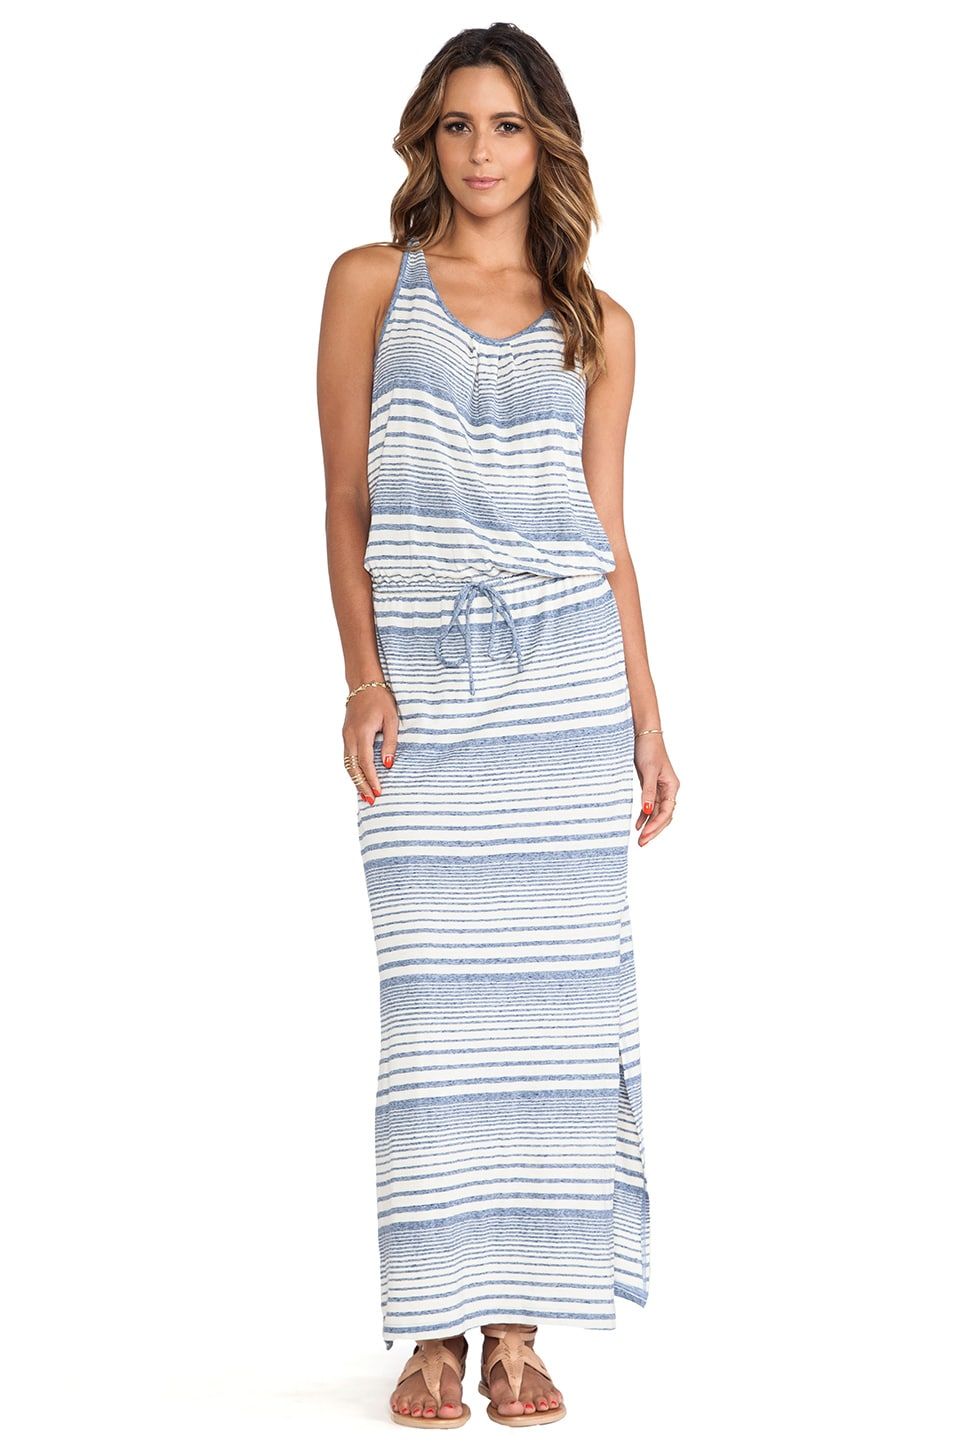 C&C California Variegated Striped Maxi Dress in Limoges